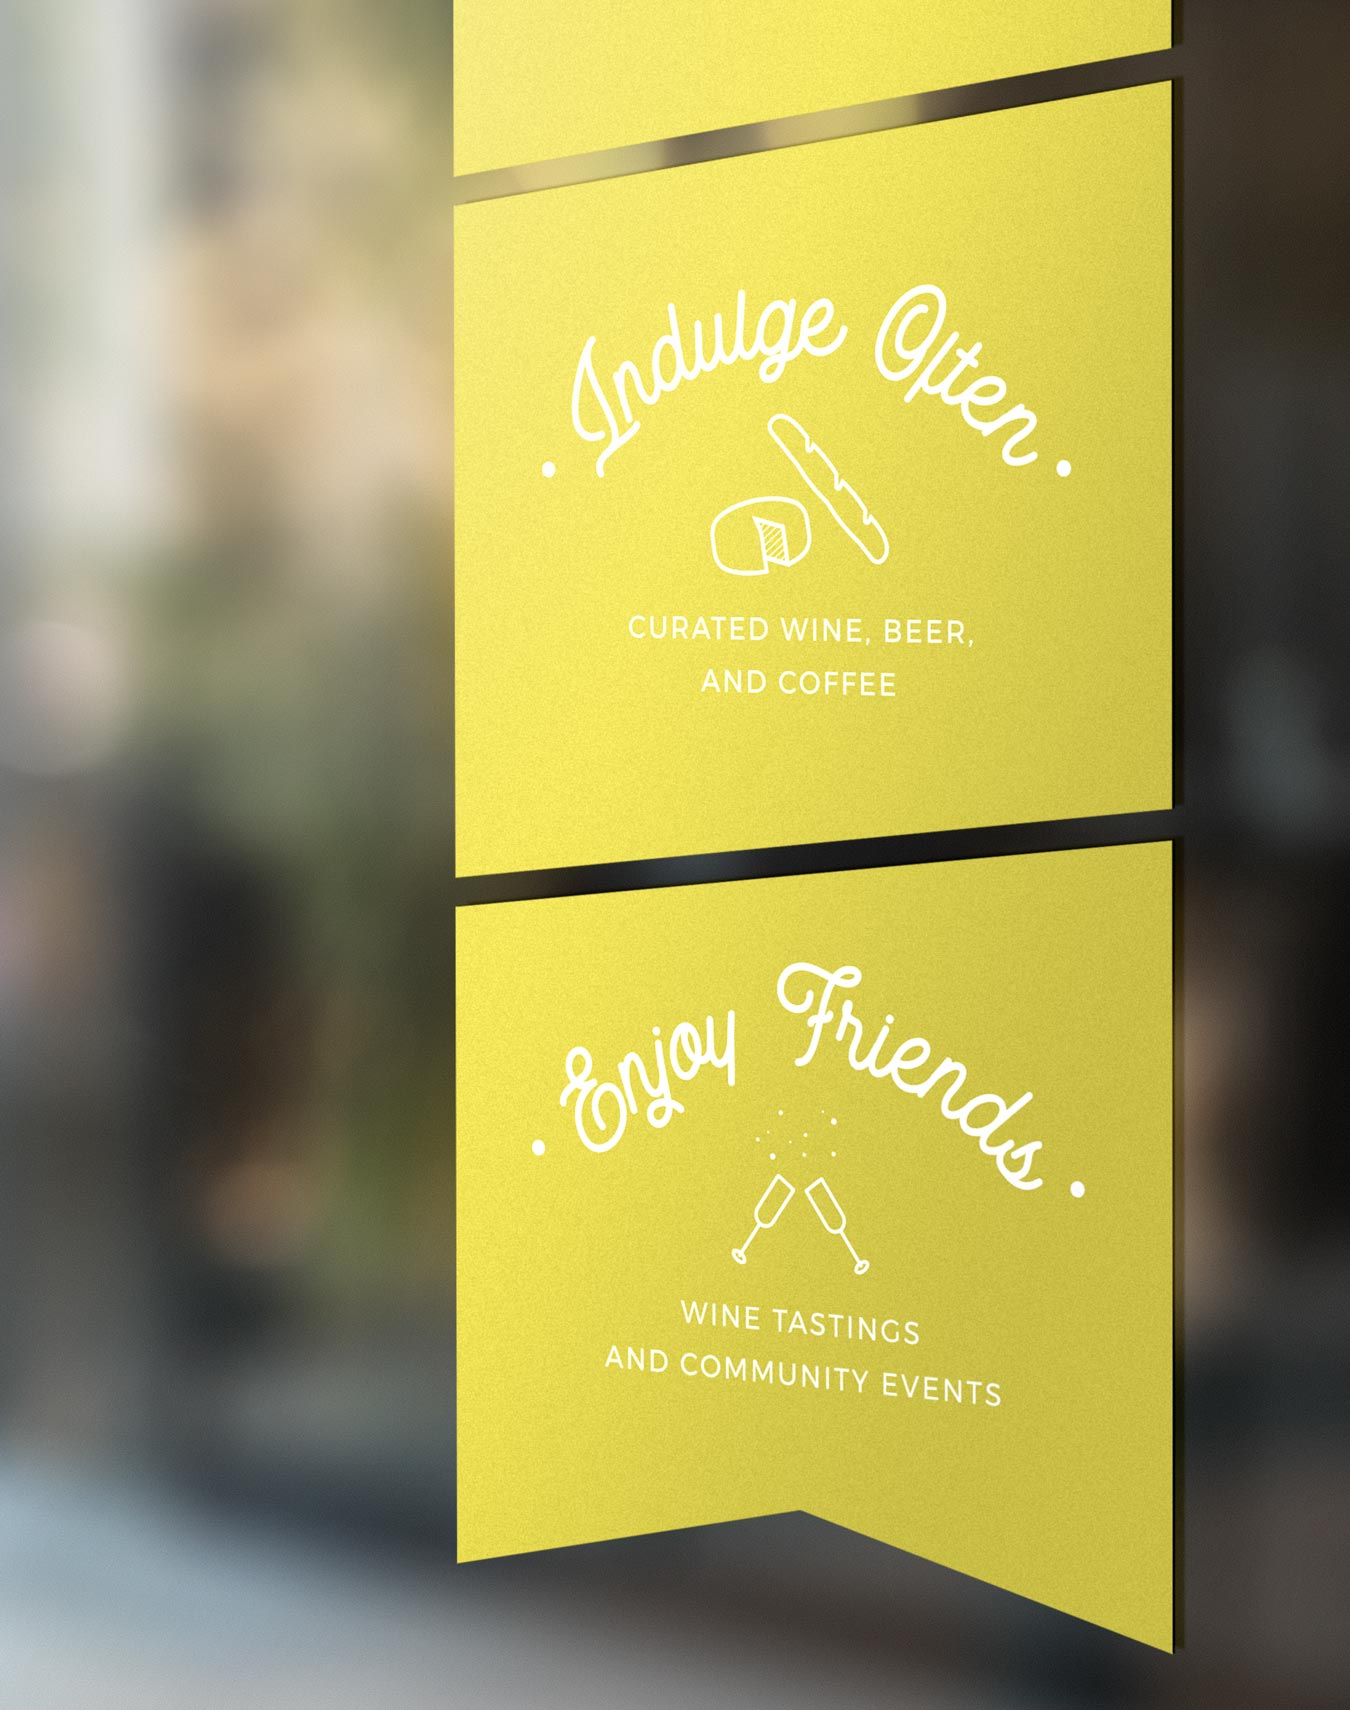 yellow window cling stickers that say indulge often and enjoy friends